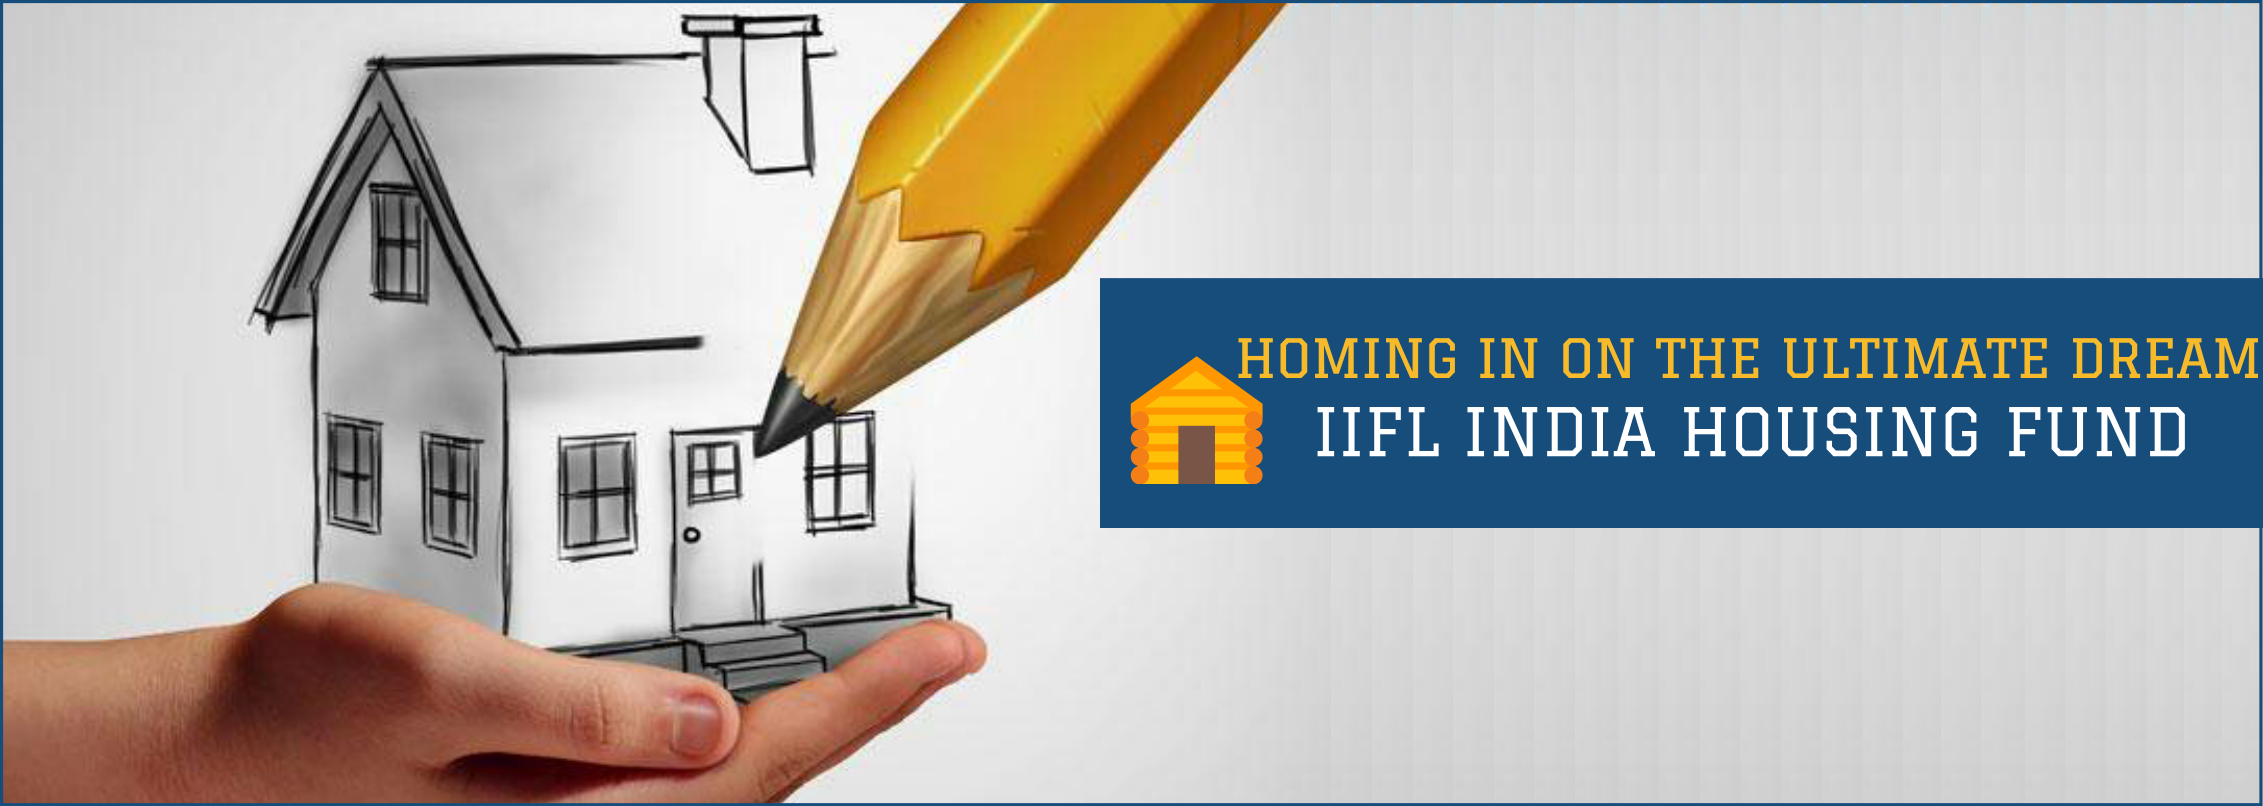 Homing in On The Ultimate Dream: IIFL India Housing Fund